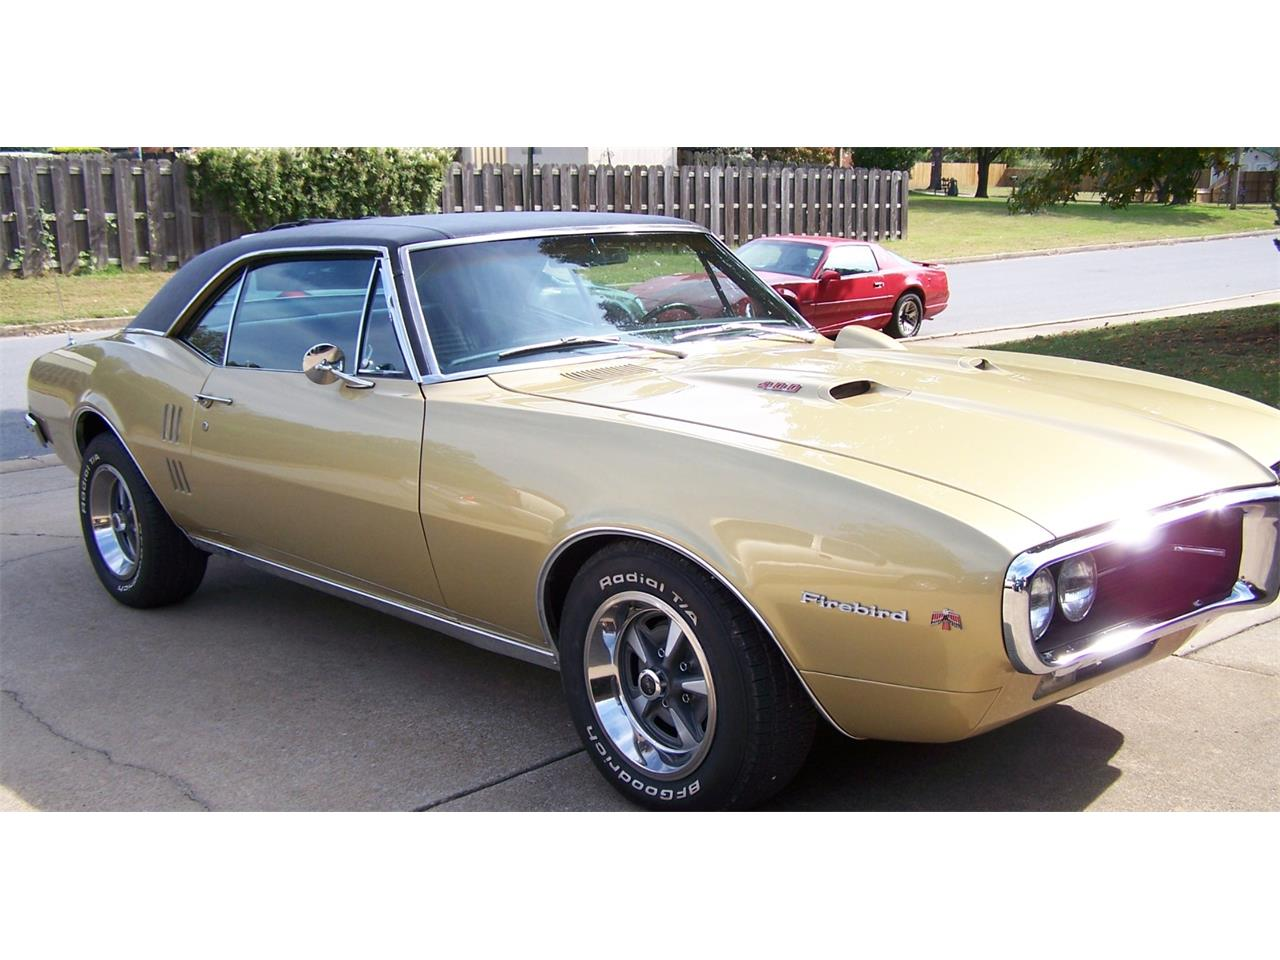 Large Picture of Classic '67 Firebird located in Arkansas - $29,995.00 - G9J7